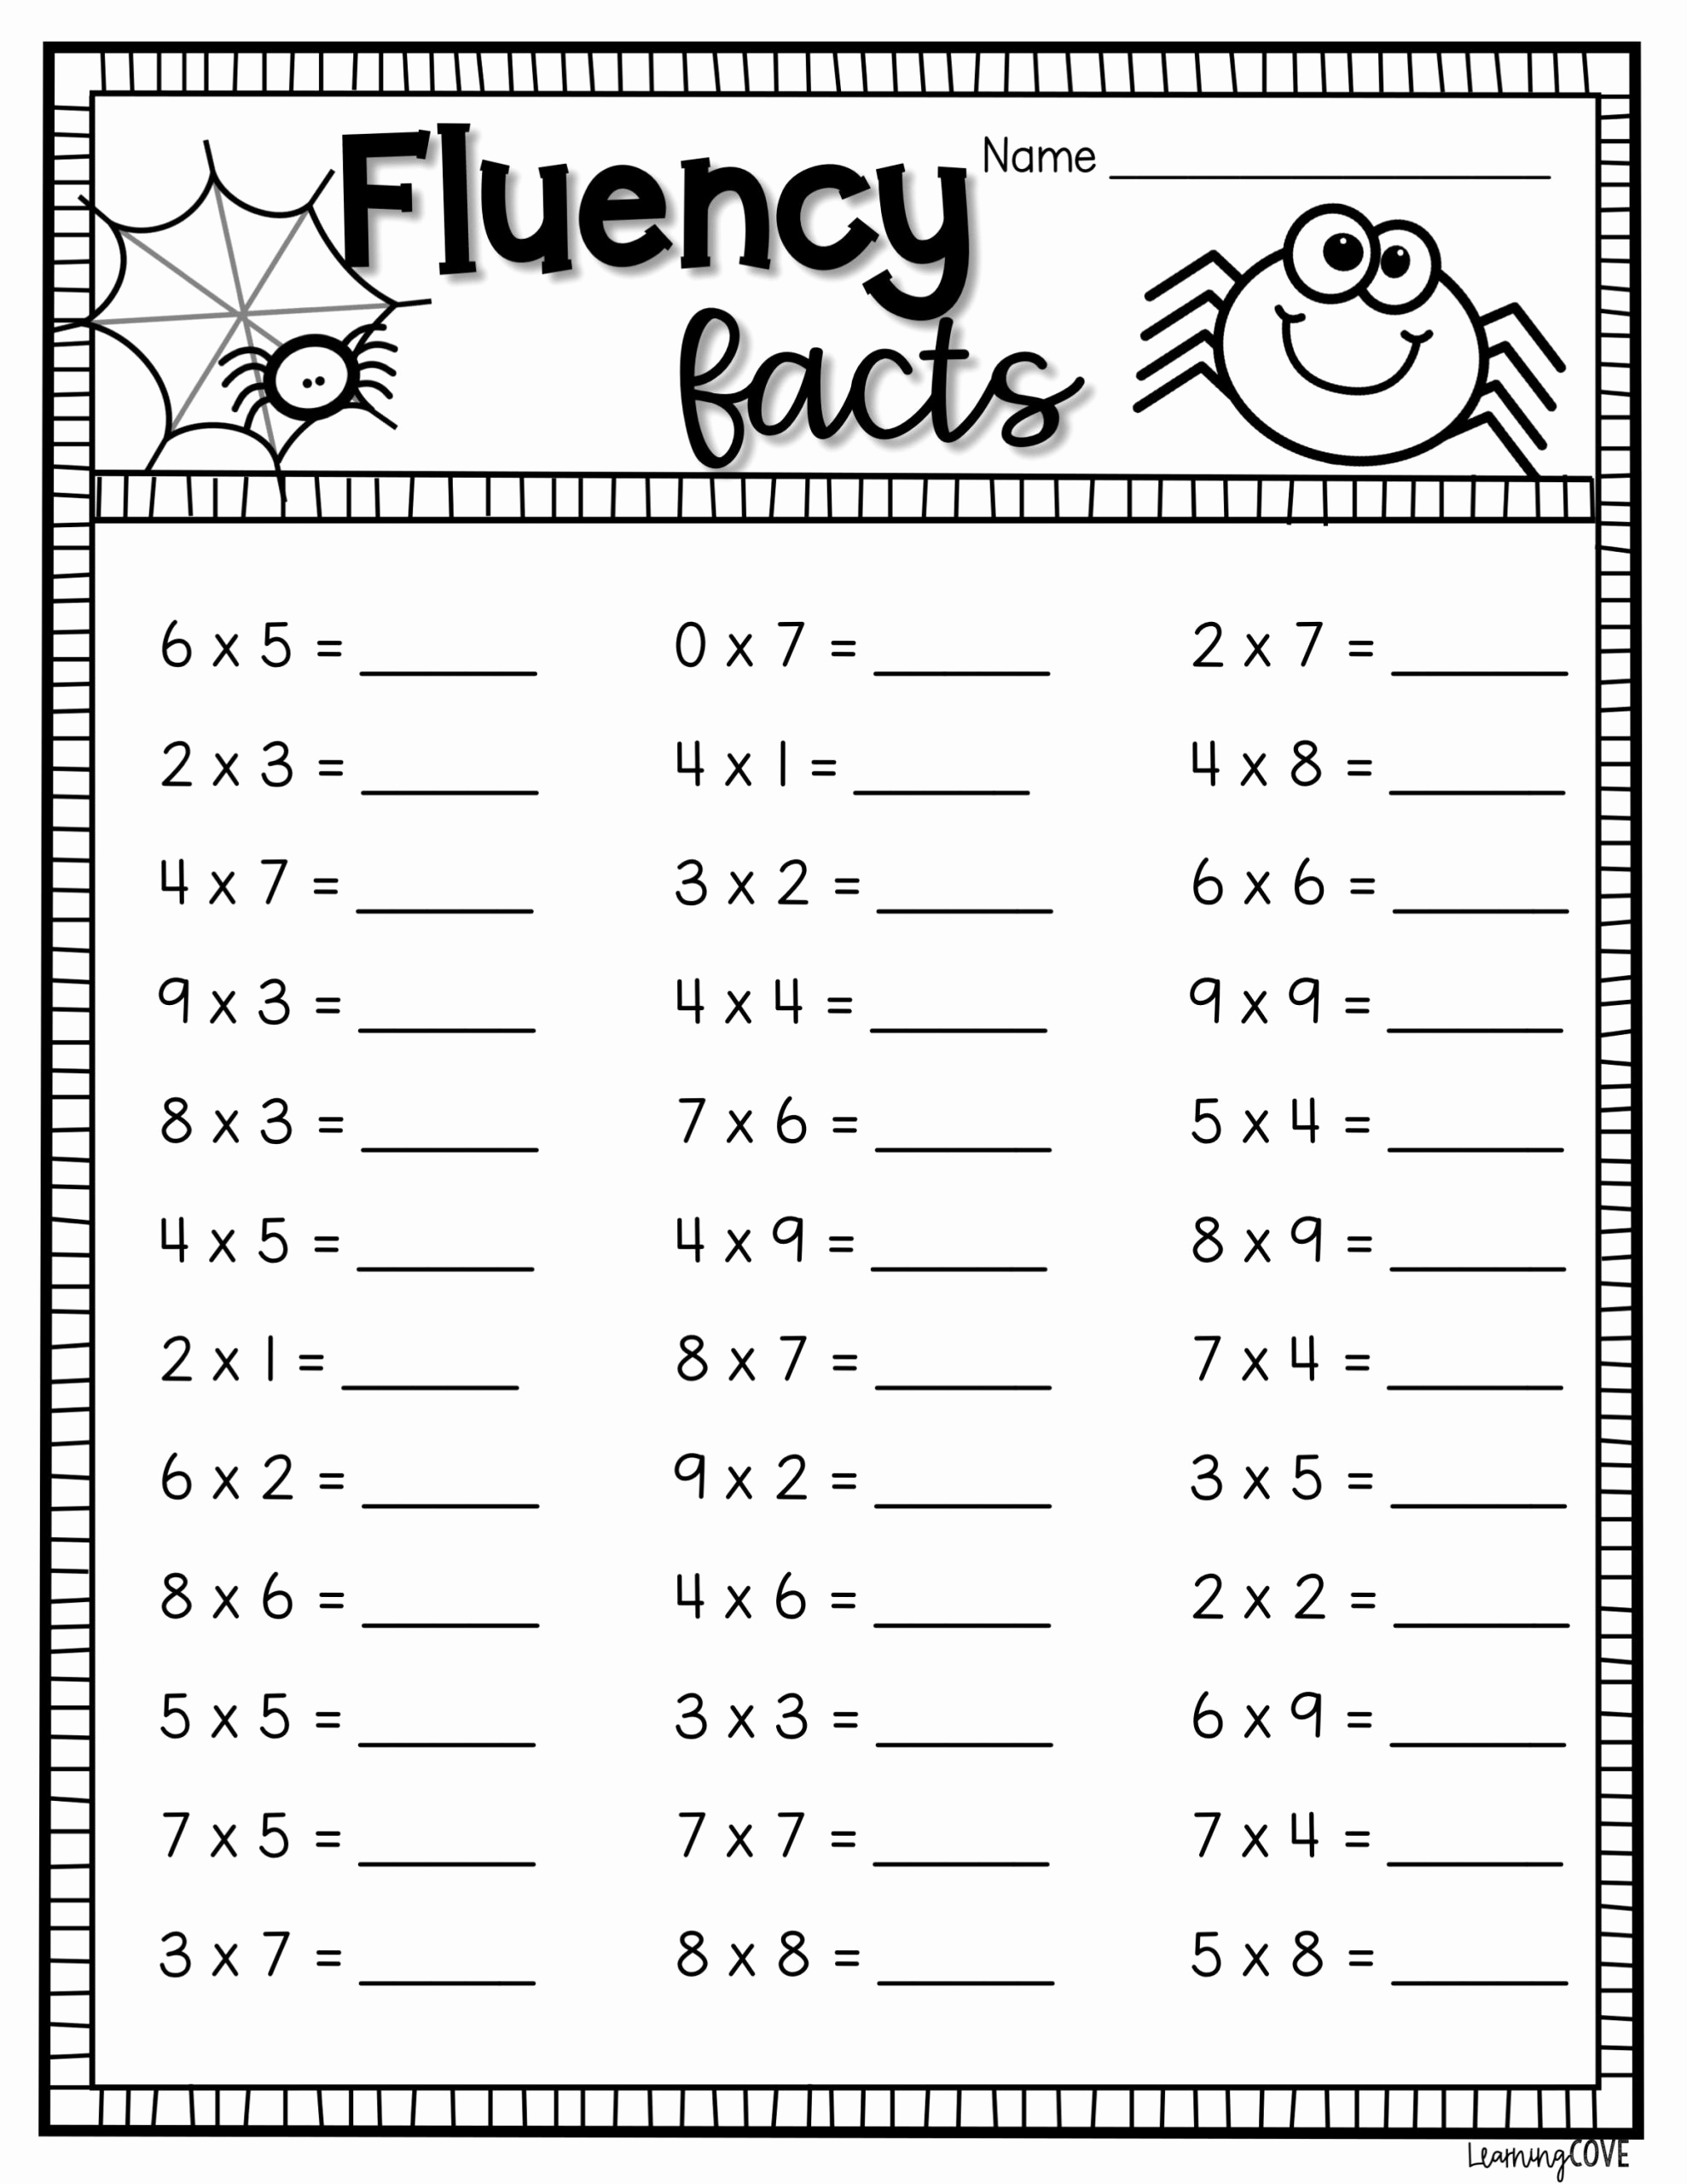 Repeated Addition Worksheets 2nd Grade Lovely 20 Repeated Addition Worksheets 2nd Grade